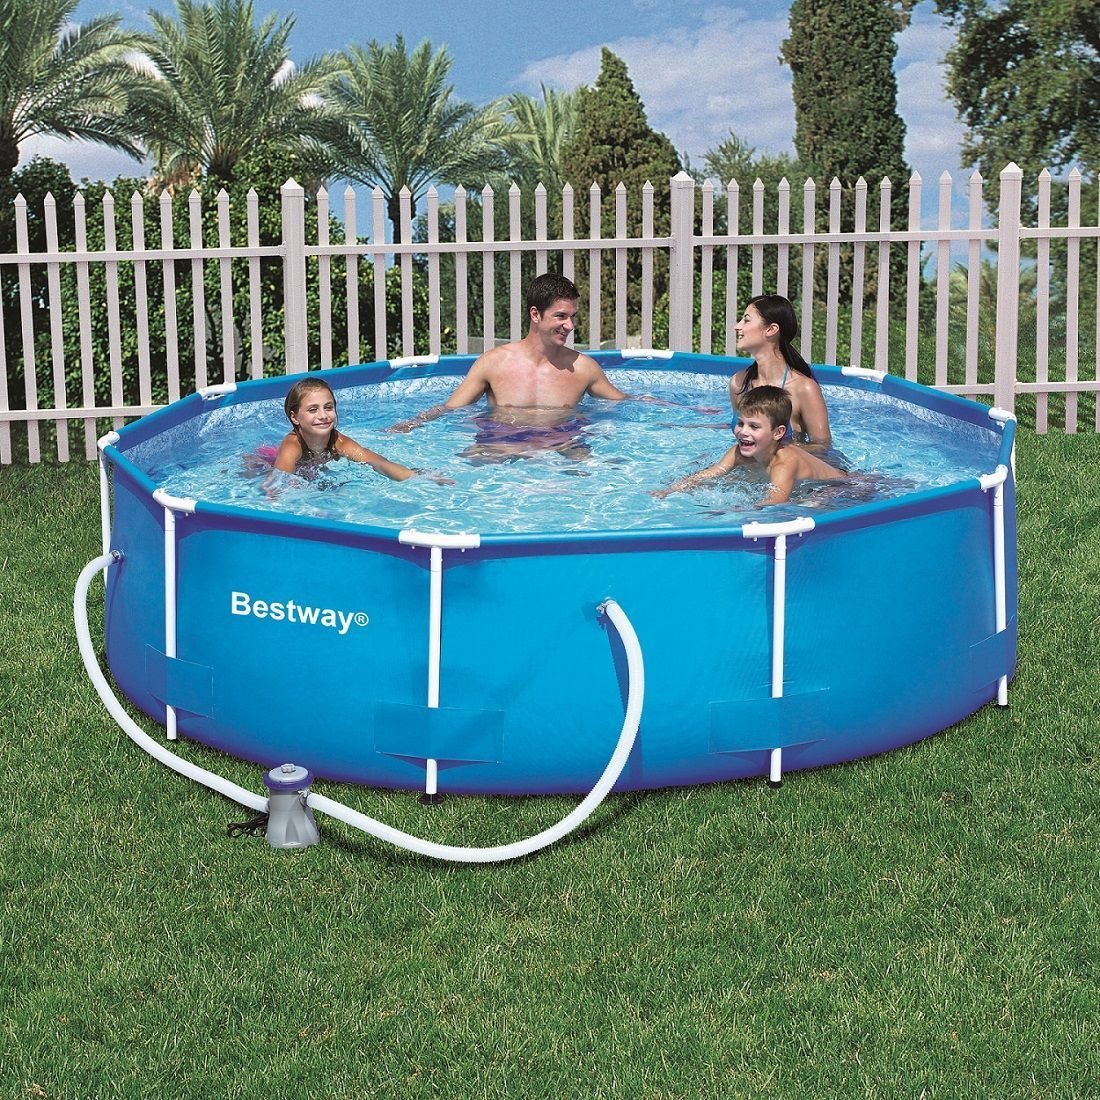 Piscinas tubulares bestway for Piscina pequena desmontable con depuradora